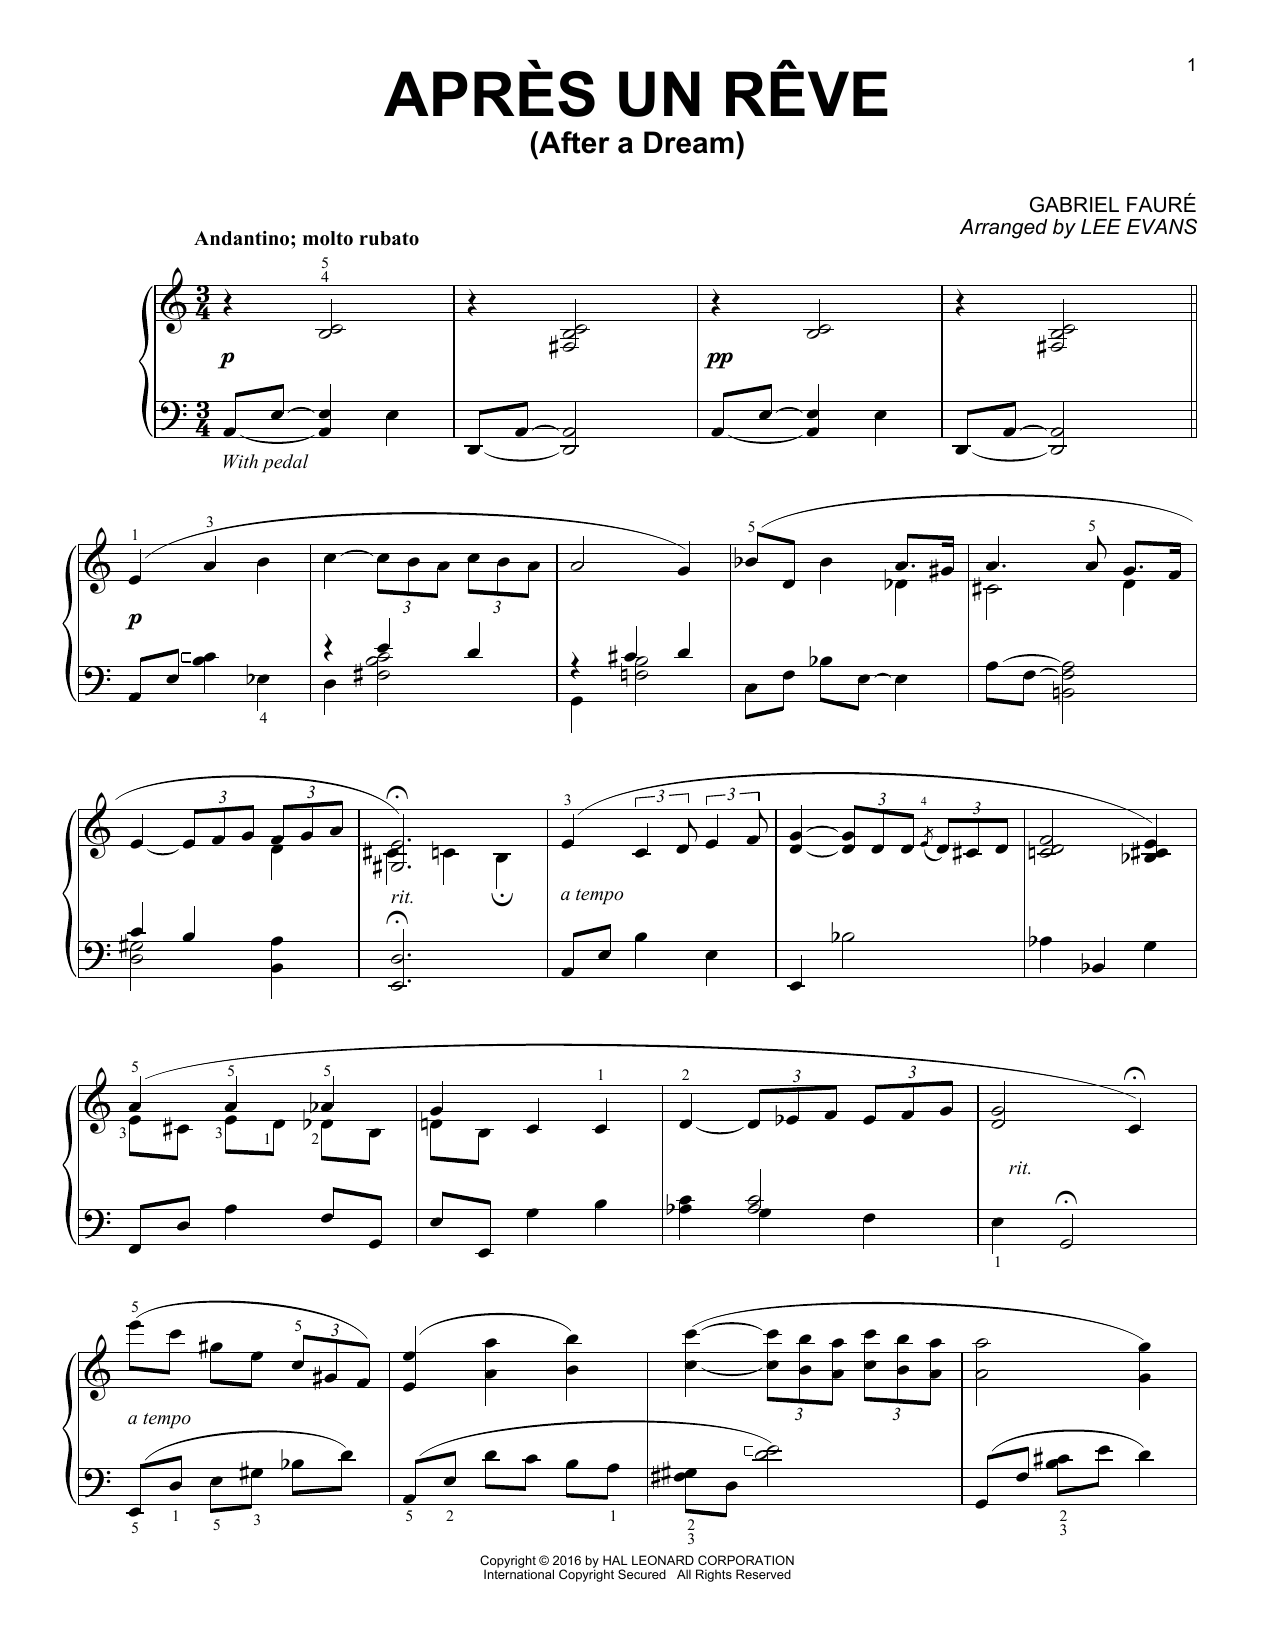 Download Lee Evans 'Apres un reve' Digital Sheet Music Notes & Chords and start playing in minutes